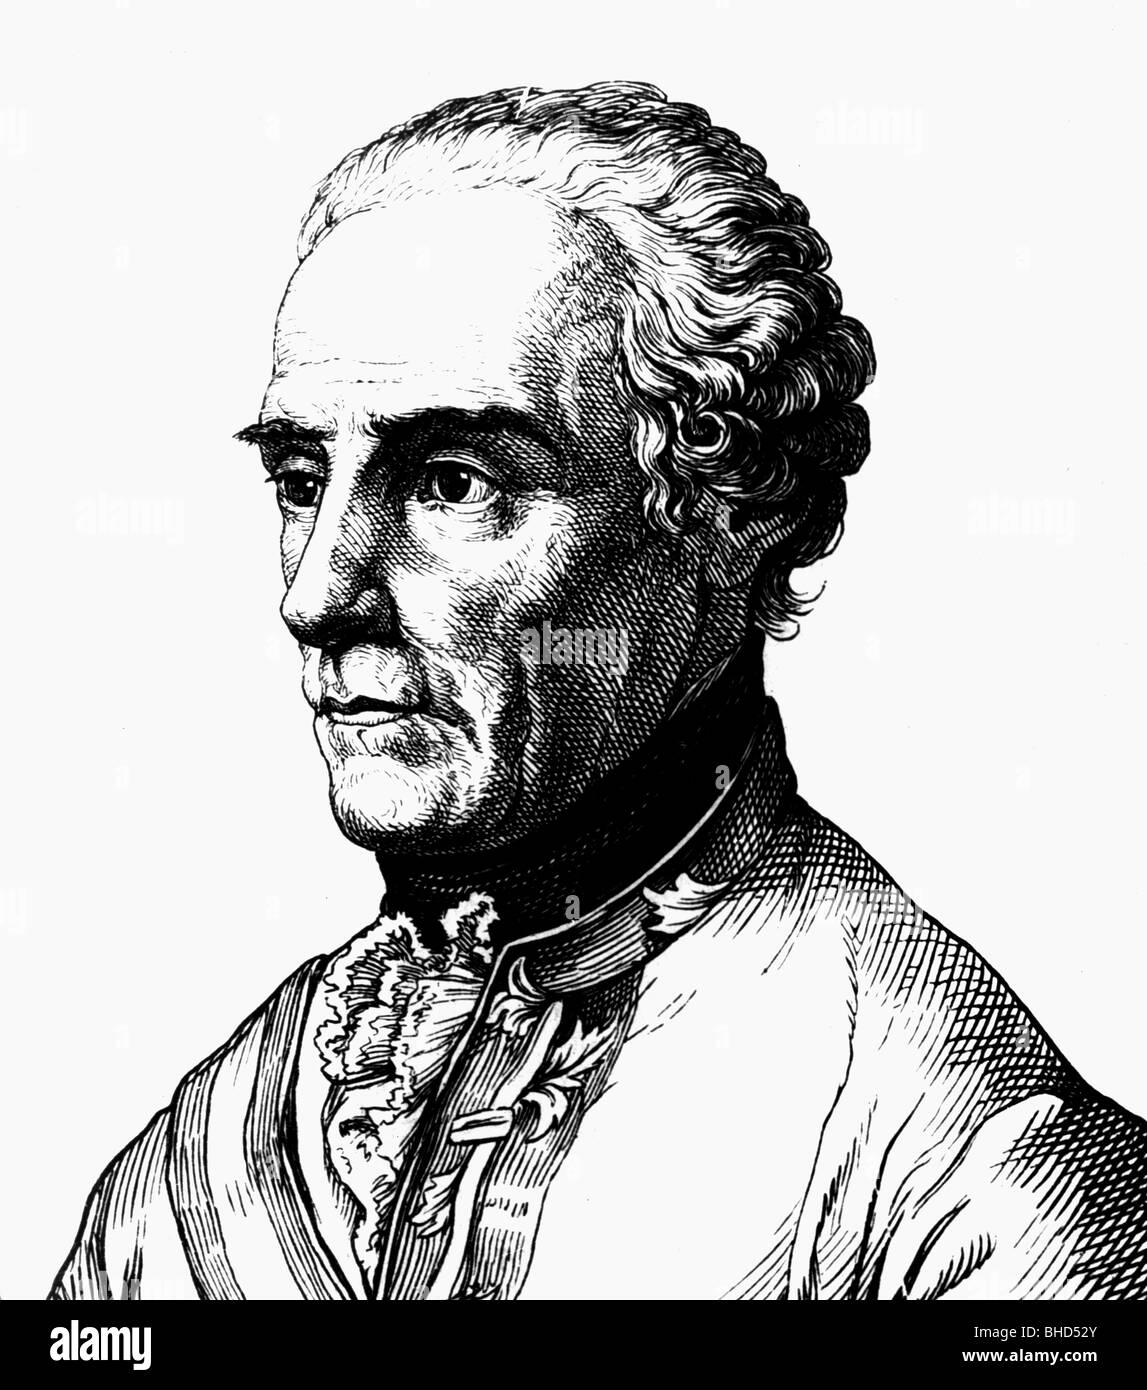 Laudon, Gideon Ernst Baron von, 2.2.1717 - 14.7.1790, Austrian general, portrait, Additional-Rights-Clearances-NA - Stock Image